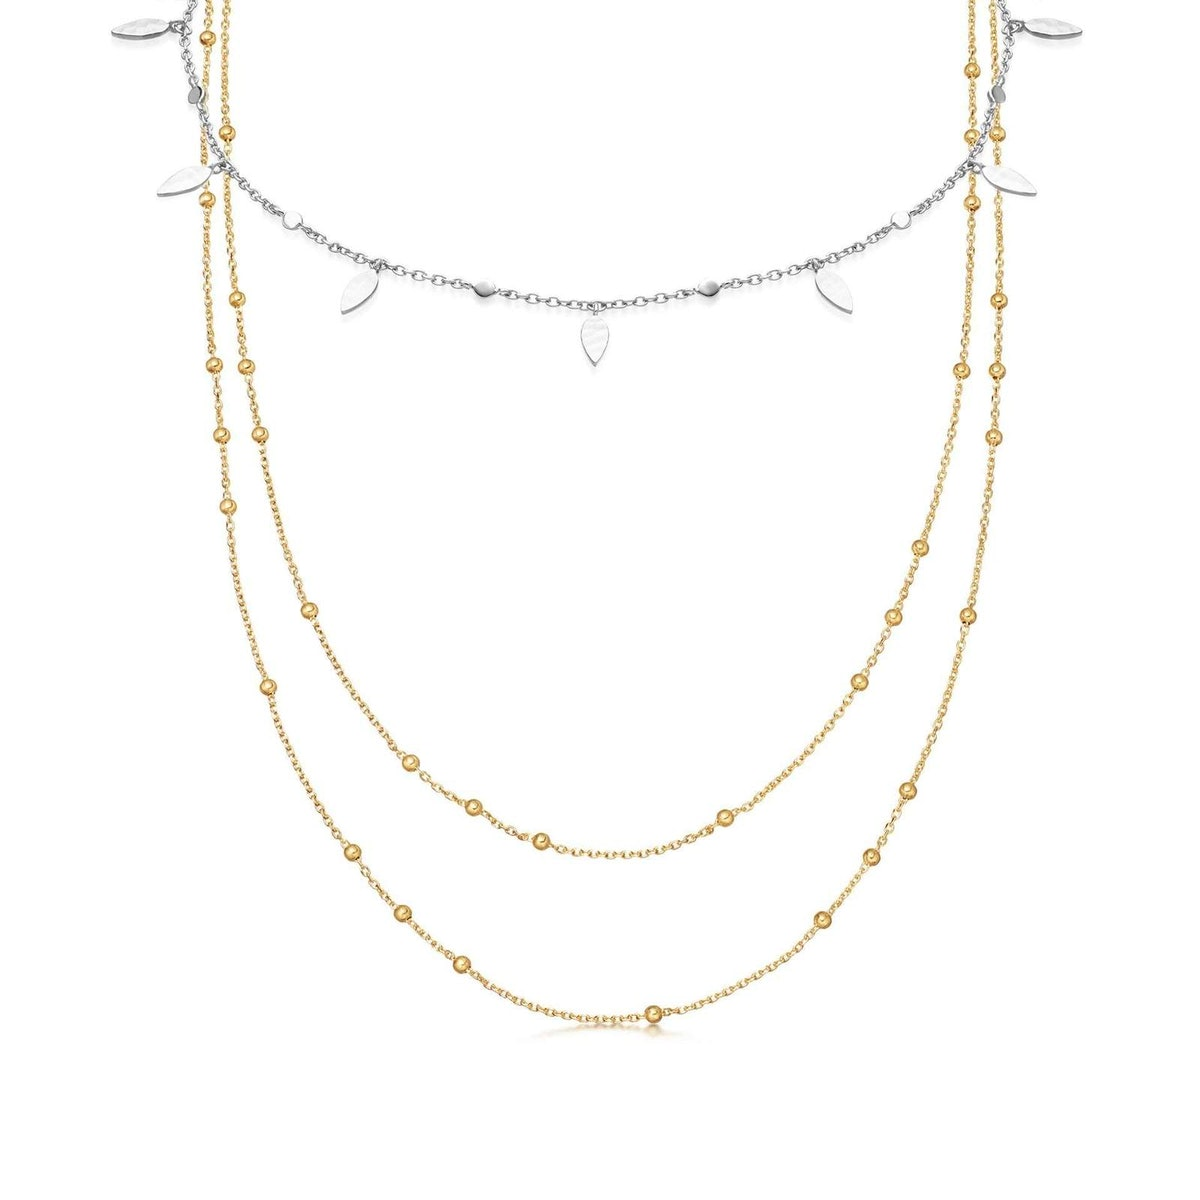 Gold vermail double chain choker mixed metal necklace set from celebrity-approved UK brand Missoma.